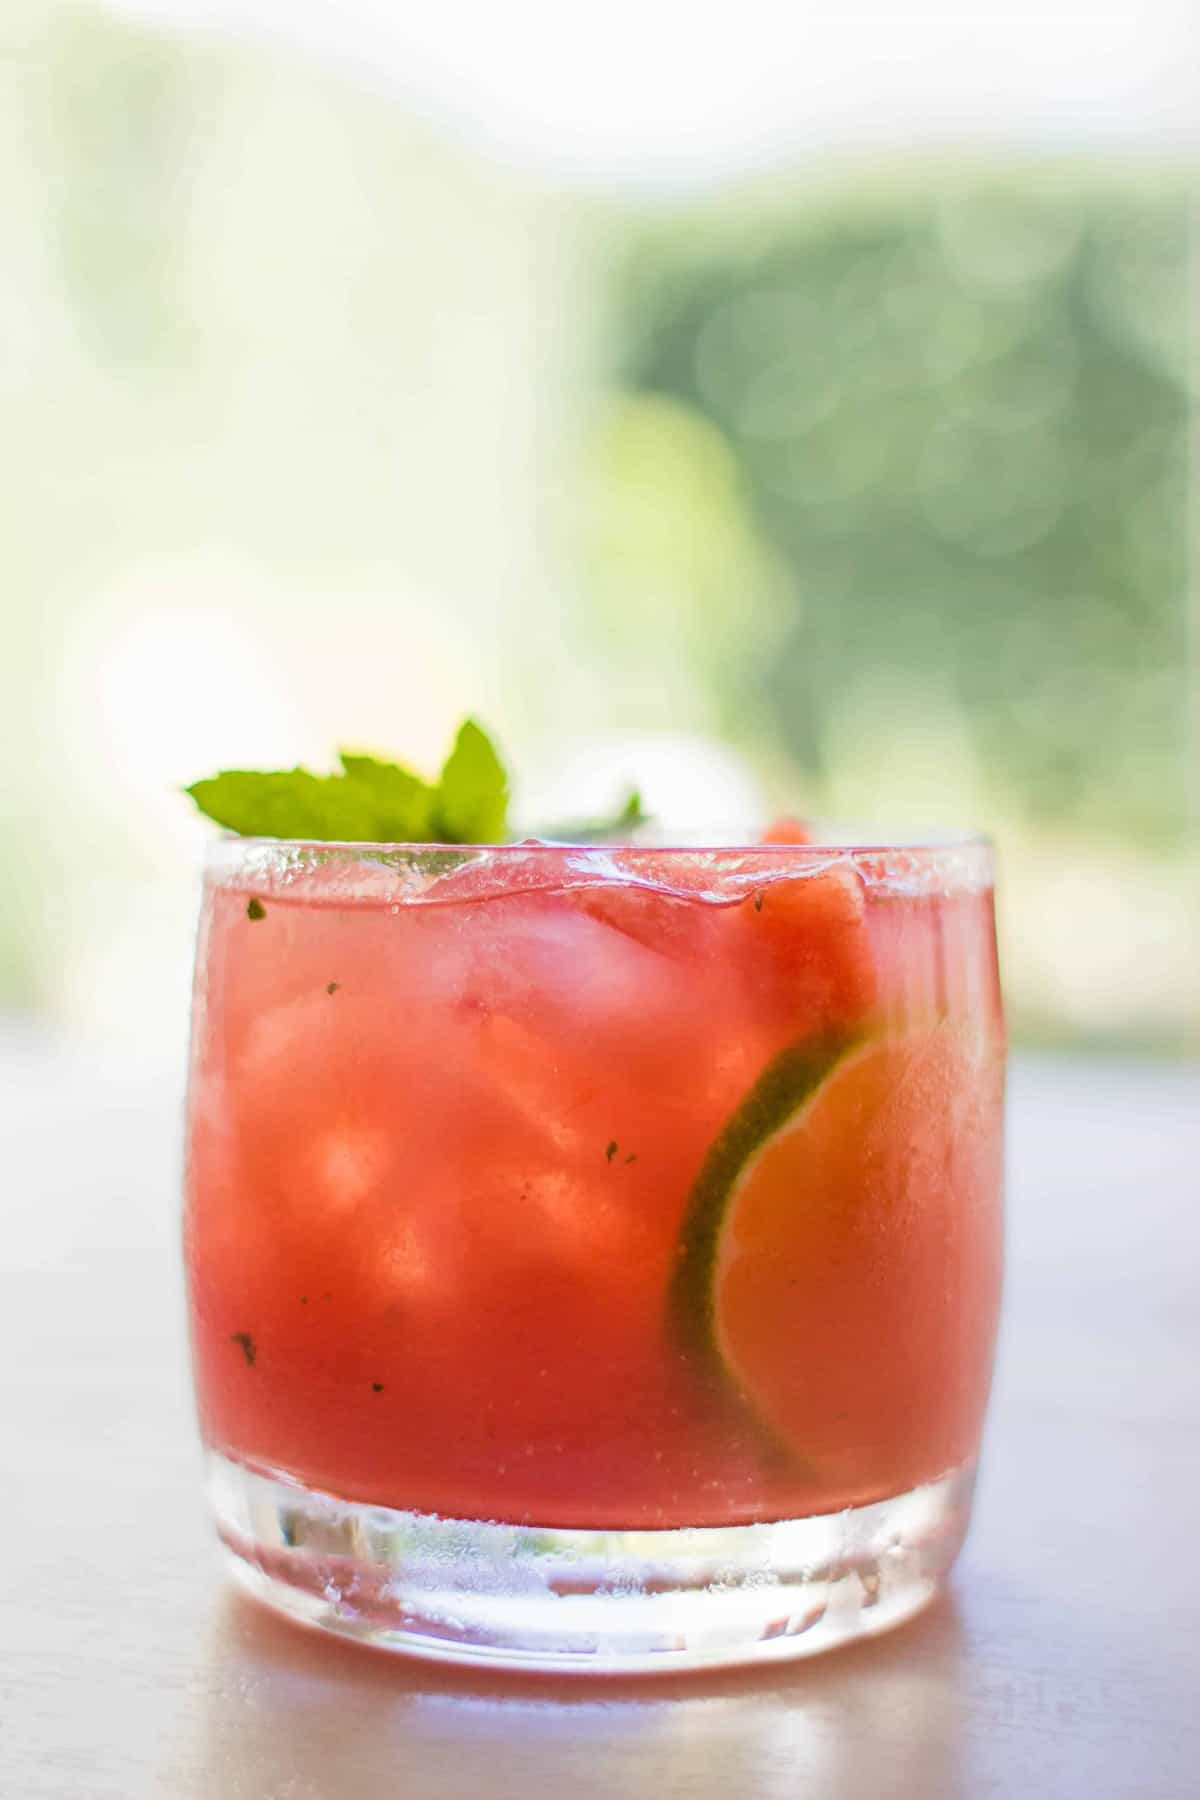 It takes less than 5 minutes to shake up a few of these Easy Melon Mojitos and they are the perfect way to #DrinkTheSummer Recipe on @beardandbonnet